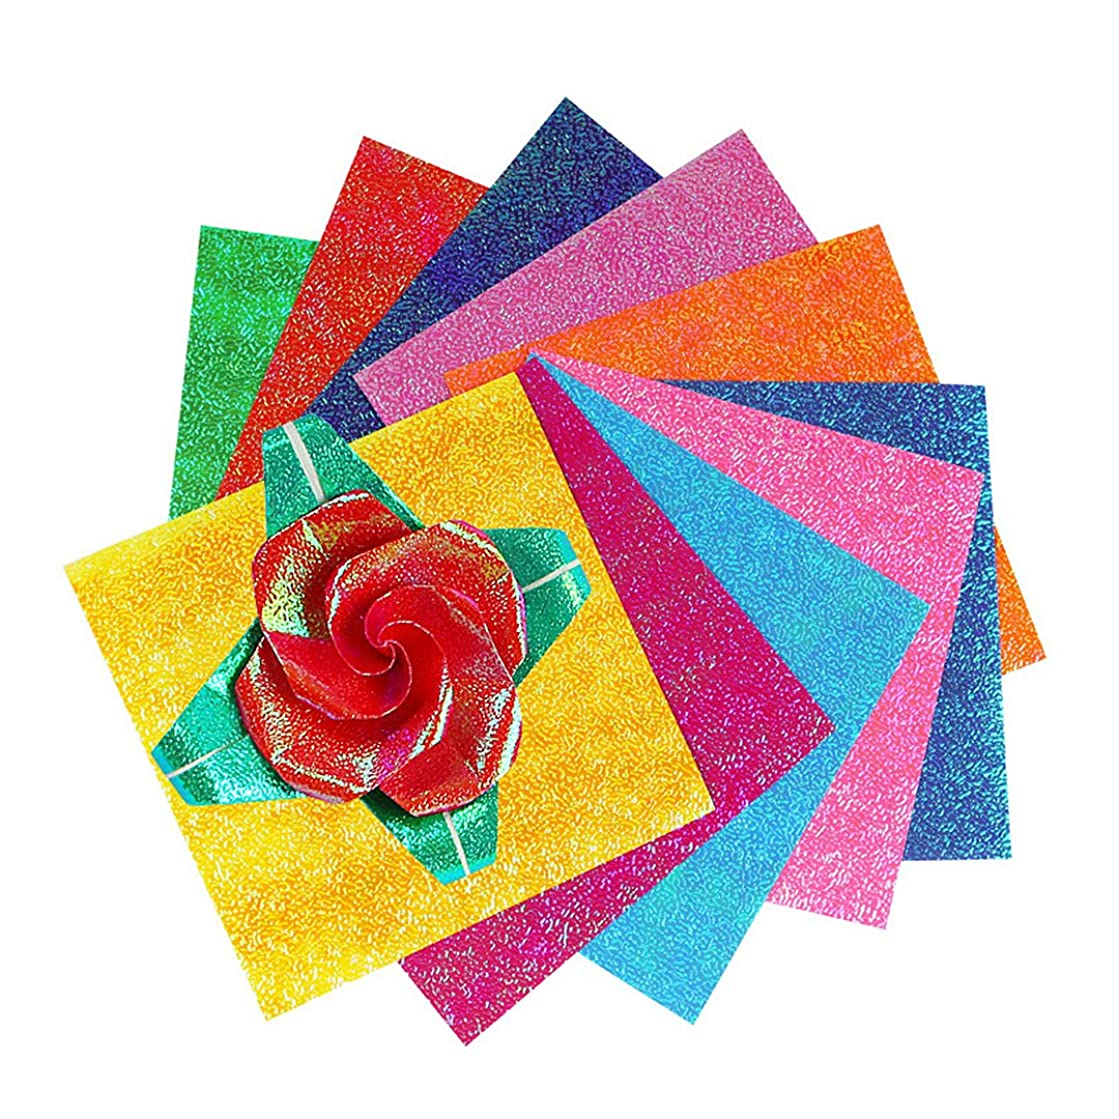 Naimo Shiny Origami Paper - 50 Sheets - 10 Colors - 7.8 Inch Square Easy Fold Paper for Beginner